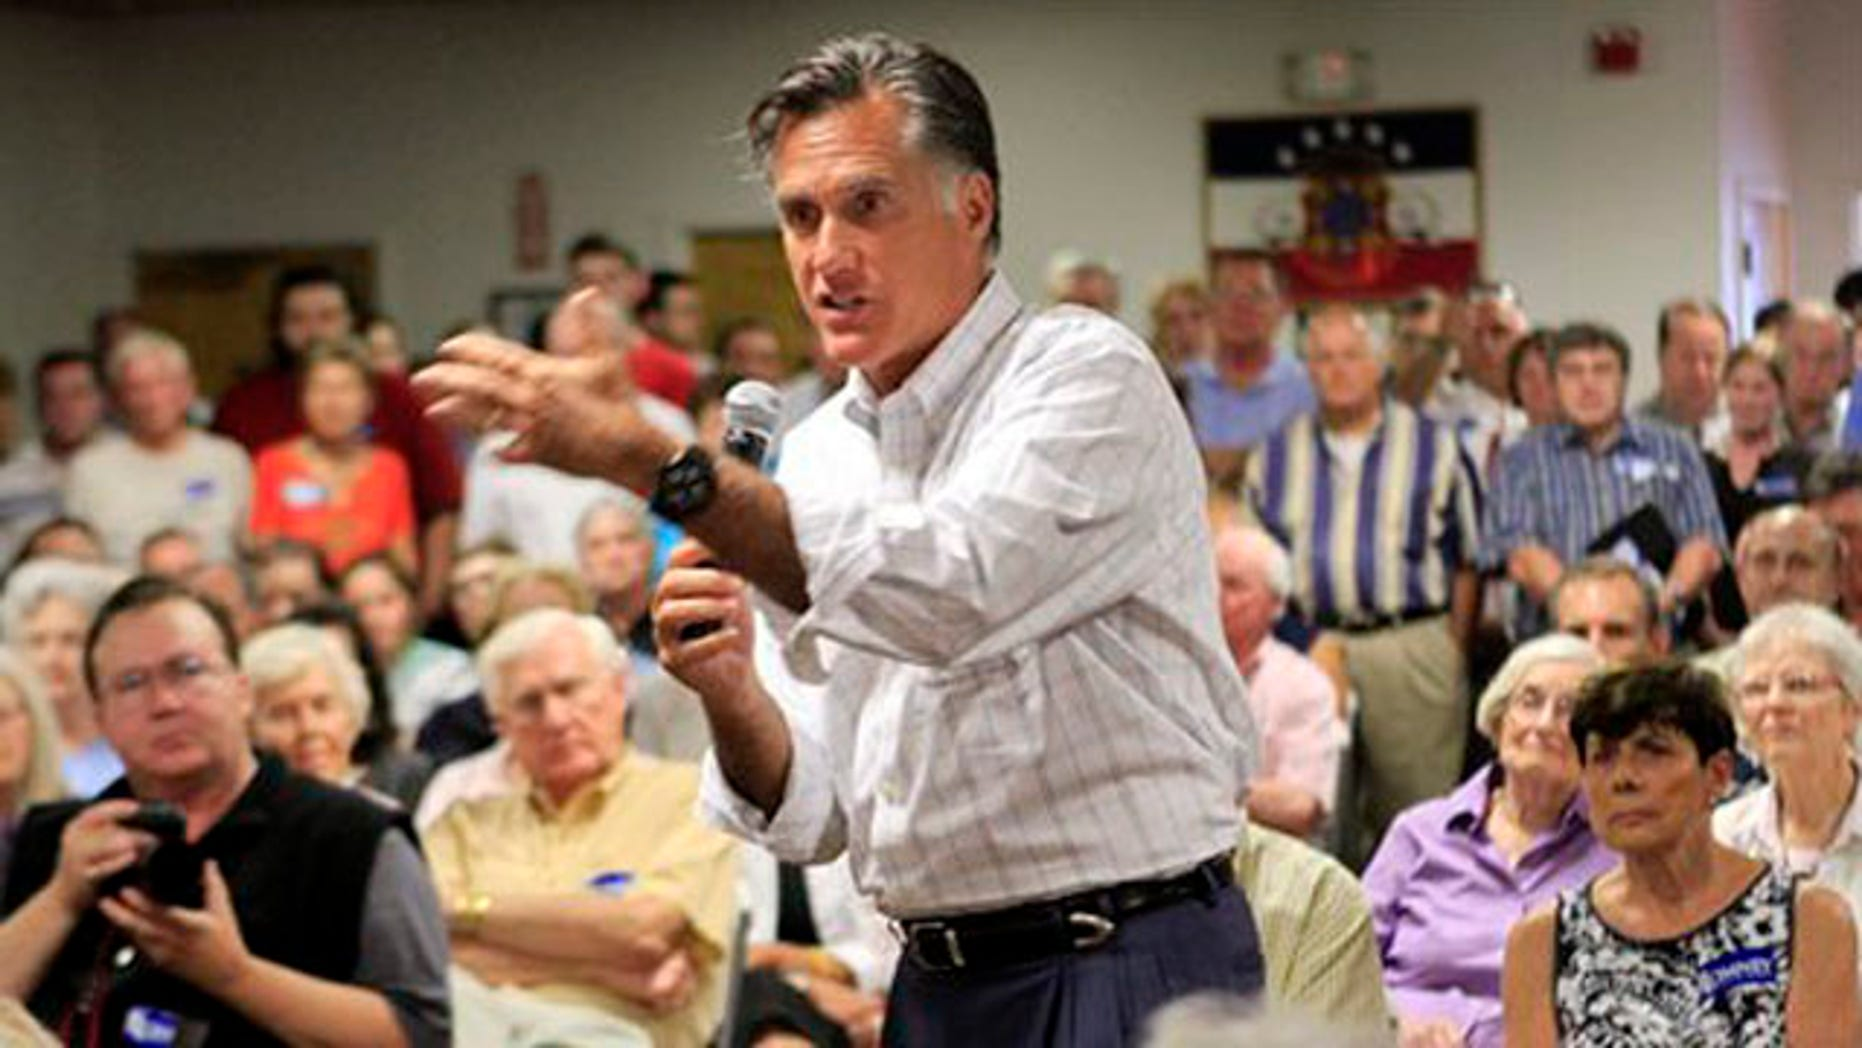 Former Massachusetts Gov. Mitt Romney speaks to a packed crowd during a Town Hall meeting Aug. 8 in Nashua, N.H.